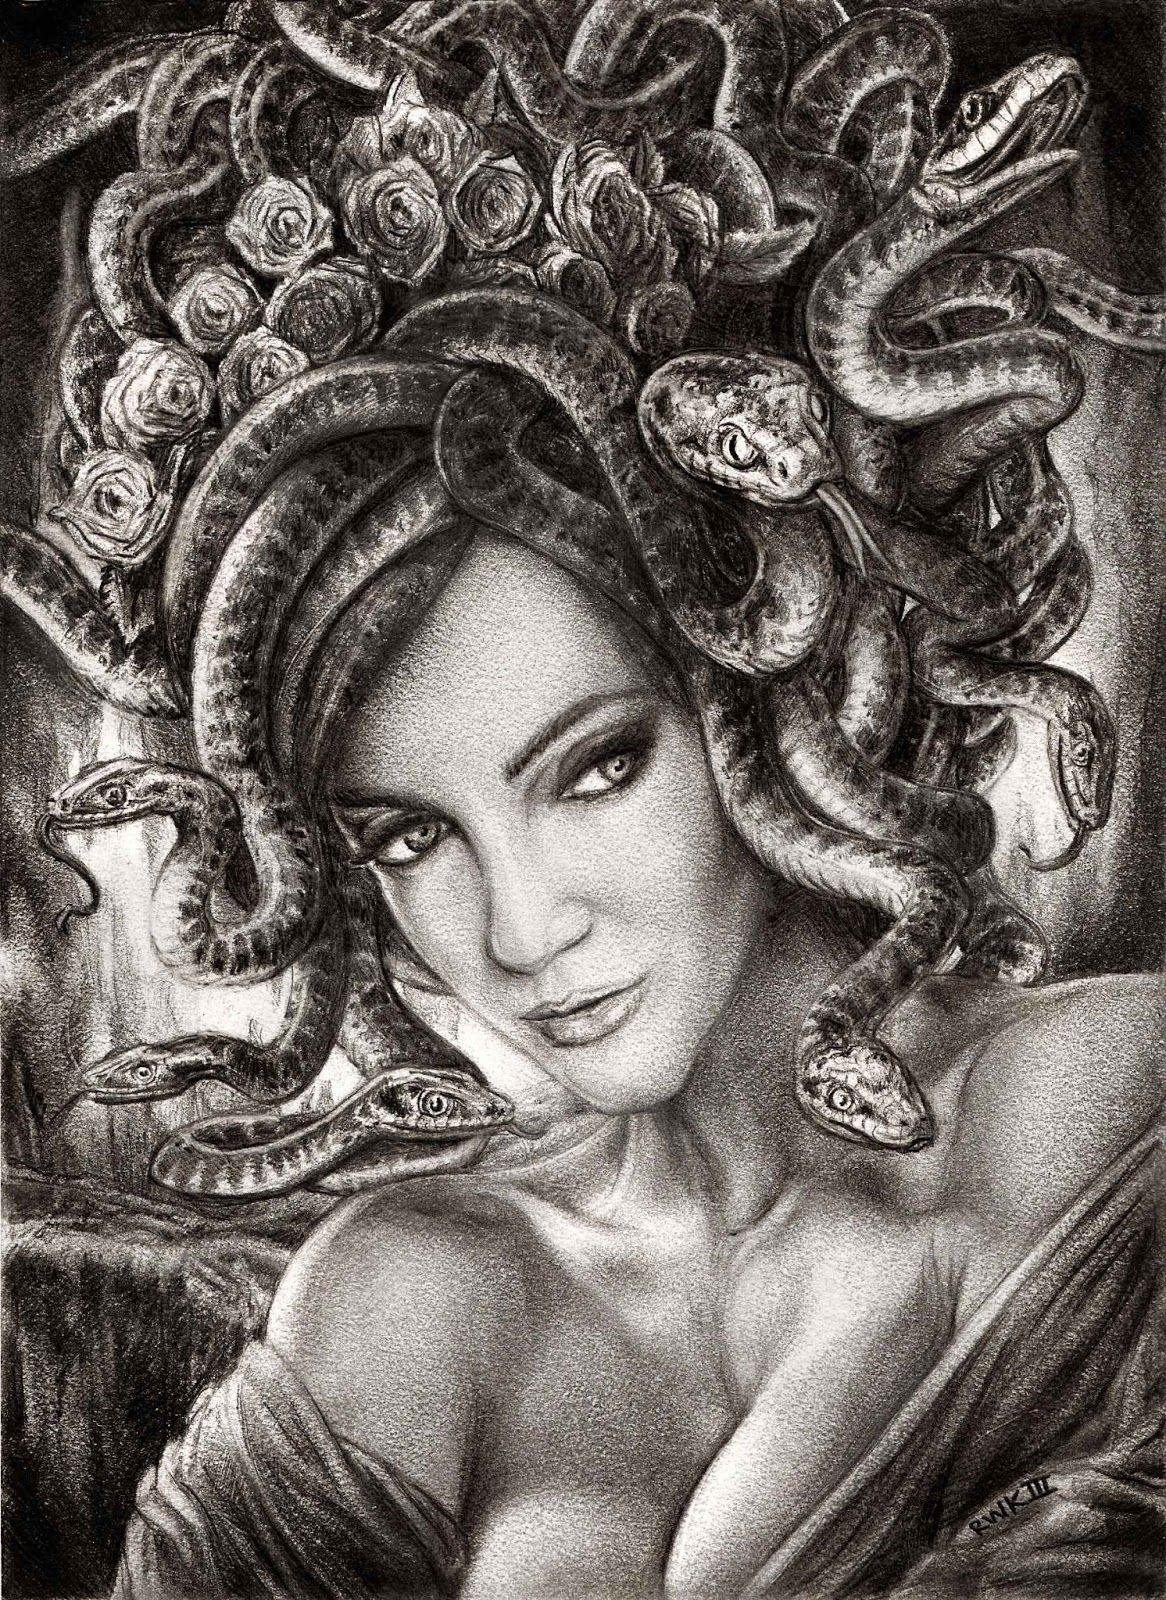 greek mythology and medusa I chose the subject of greek mythology for this thesis because it  a god, medusa  by poseidon and persephone by hades, who acts with her.